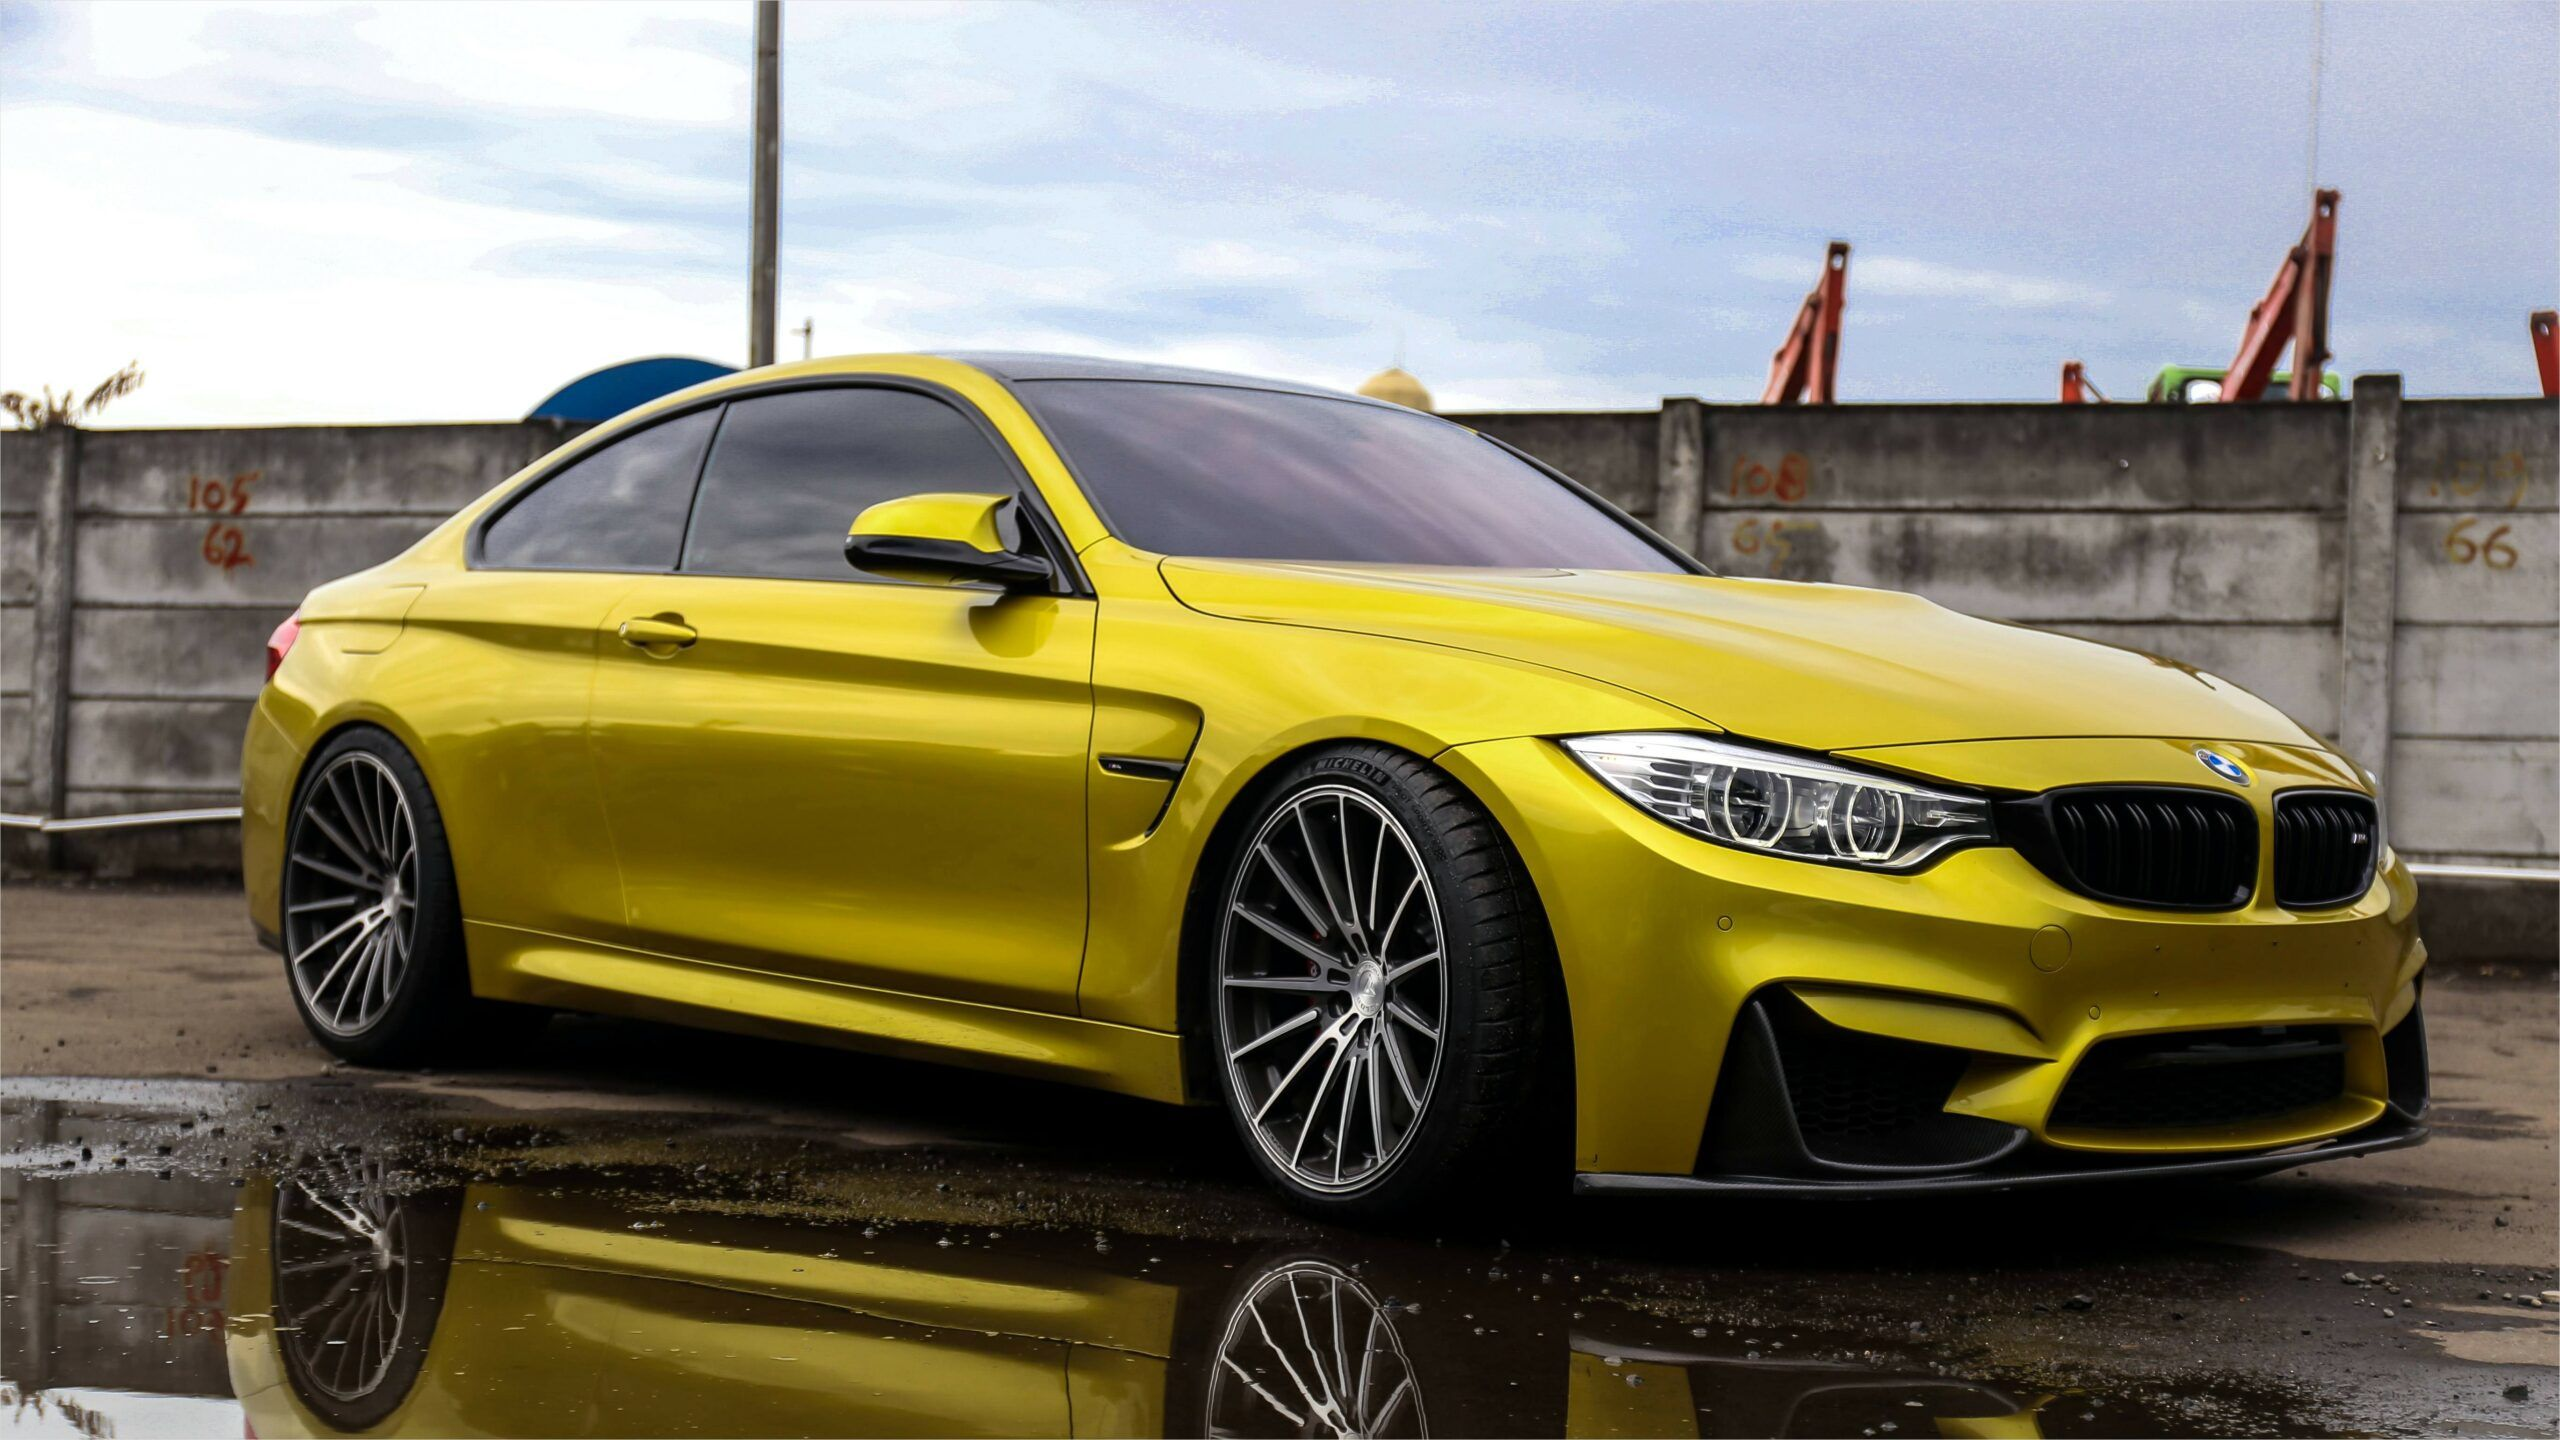 4k Bmw M Wallpapers In 2020 With Images M Wallpaper Bmw